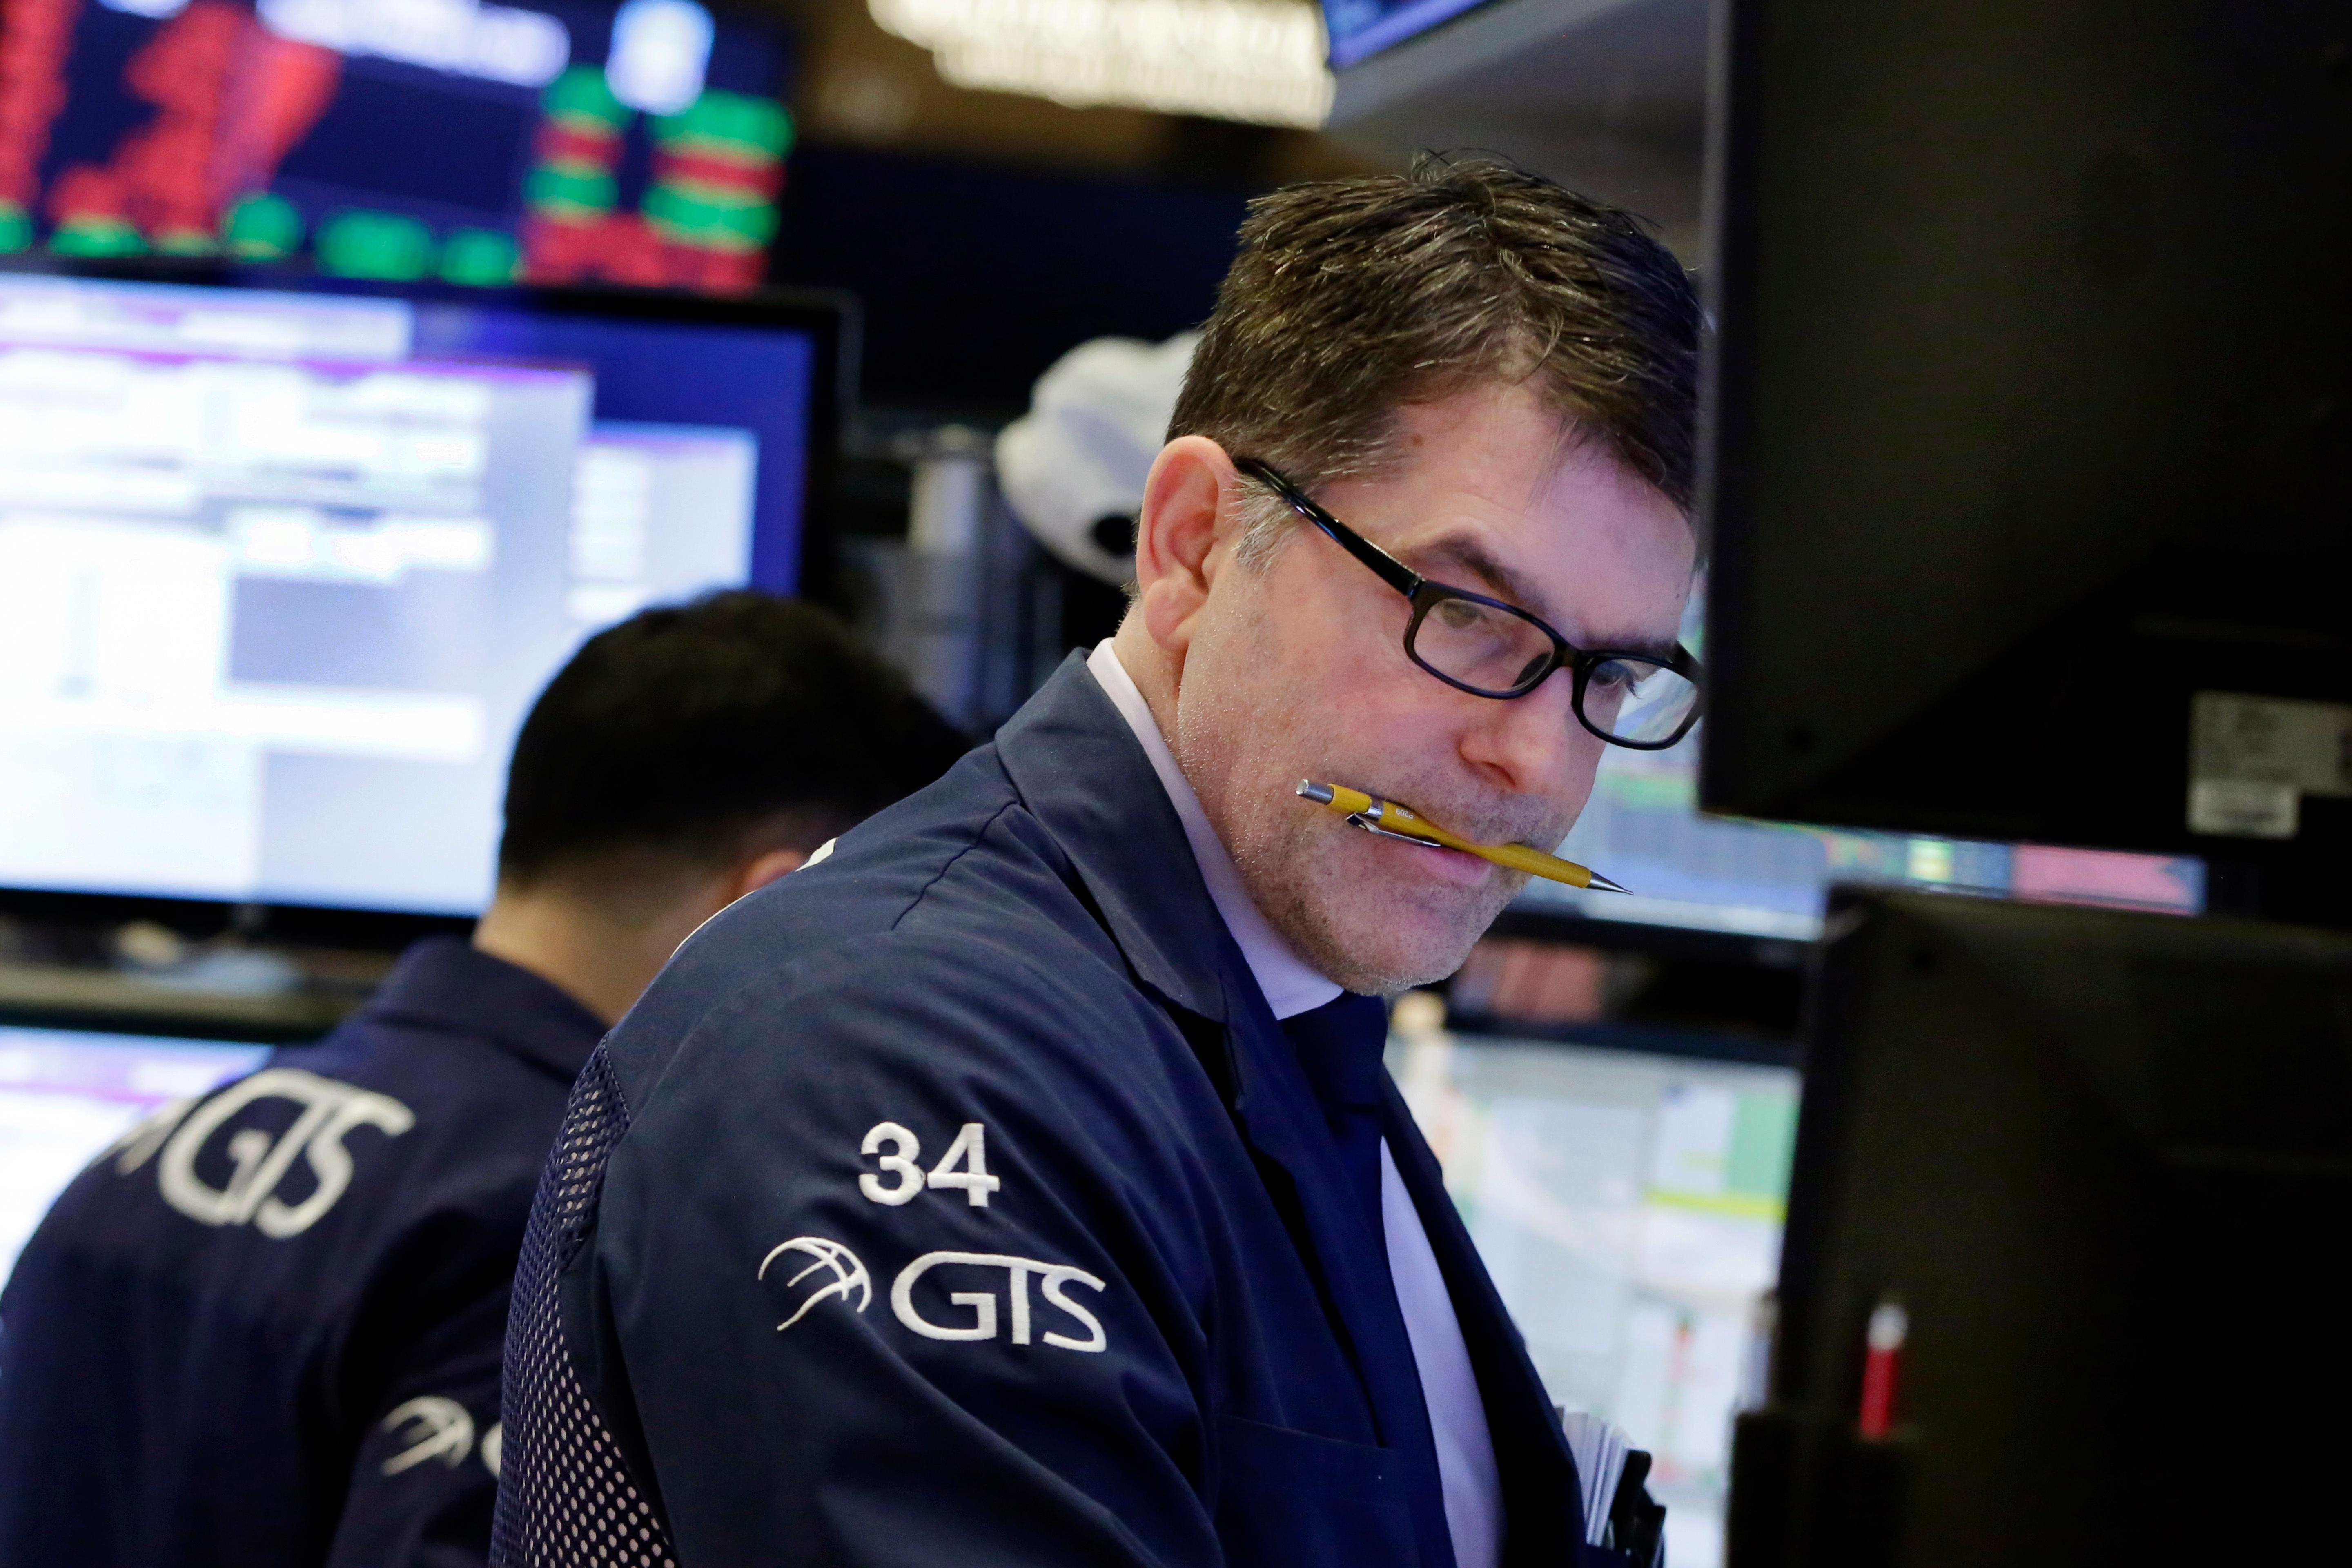 Specialist David Haubner works on the floor of the New York Stock Exchange, Tuesday, Feb. 6, 2018. The Dow Jones industrial average fell as much as 500 points in early trading, bringing the index down 10 percent from the record high it reached on Jan. 26. The DJIA quickly recovered much of that loss. (AP Photo/Richard Drew)